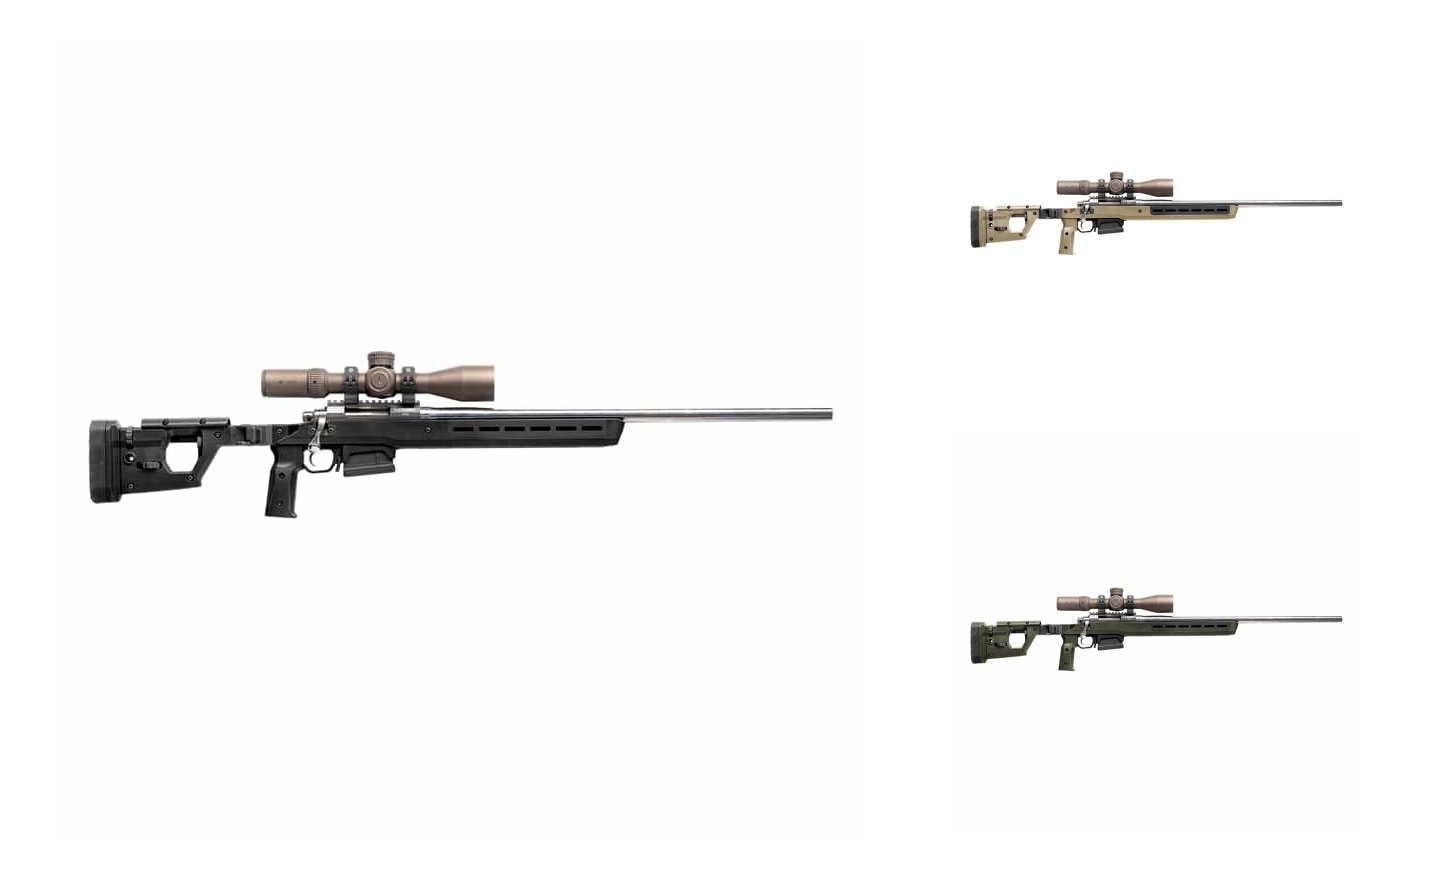 Magpul Industries Pro 700 Rifle Chassis Up To 9 00 Off 5 Star Rating W Free Shipping